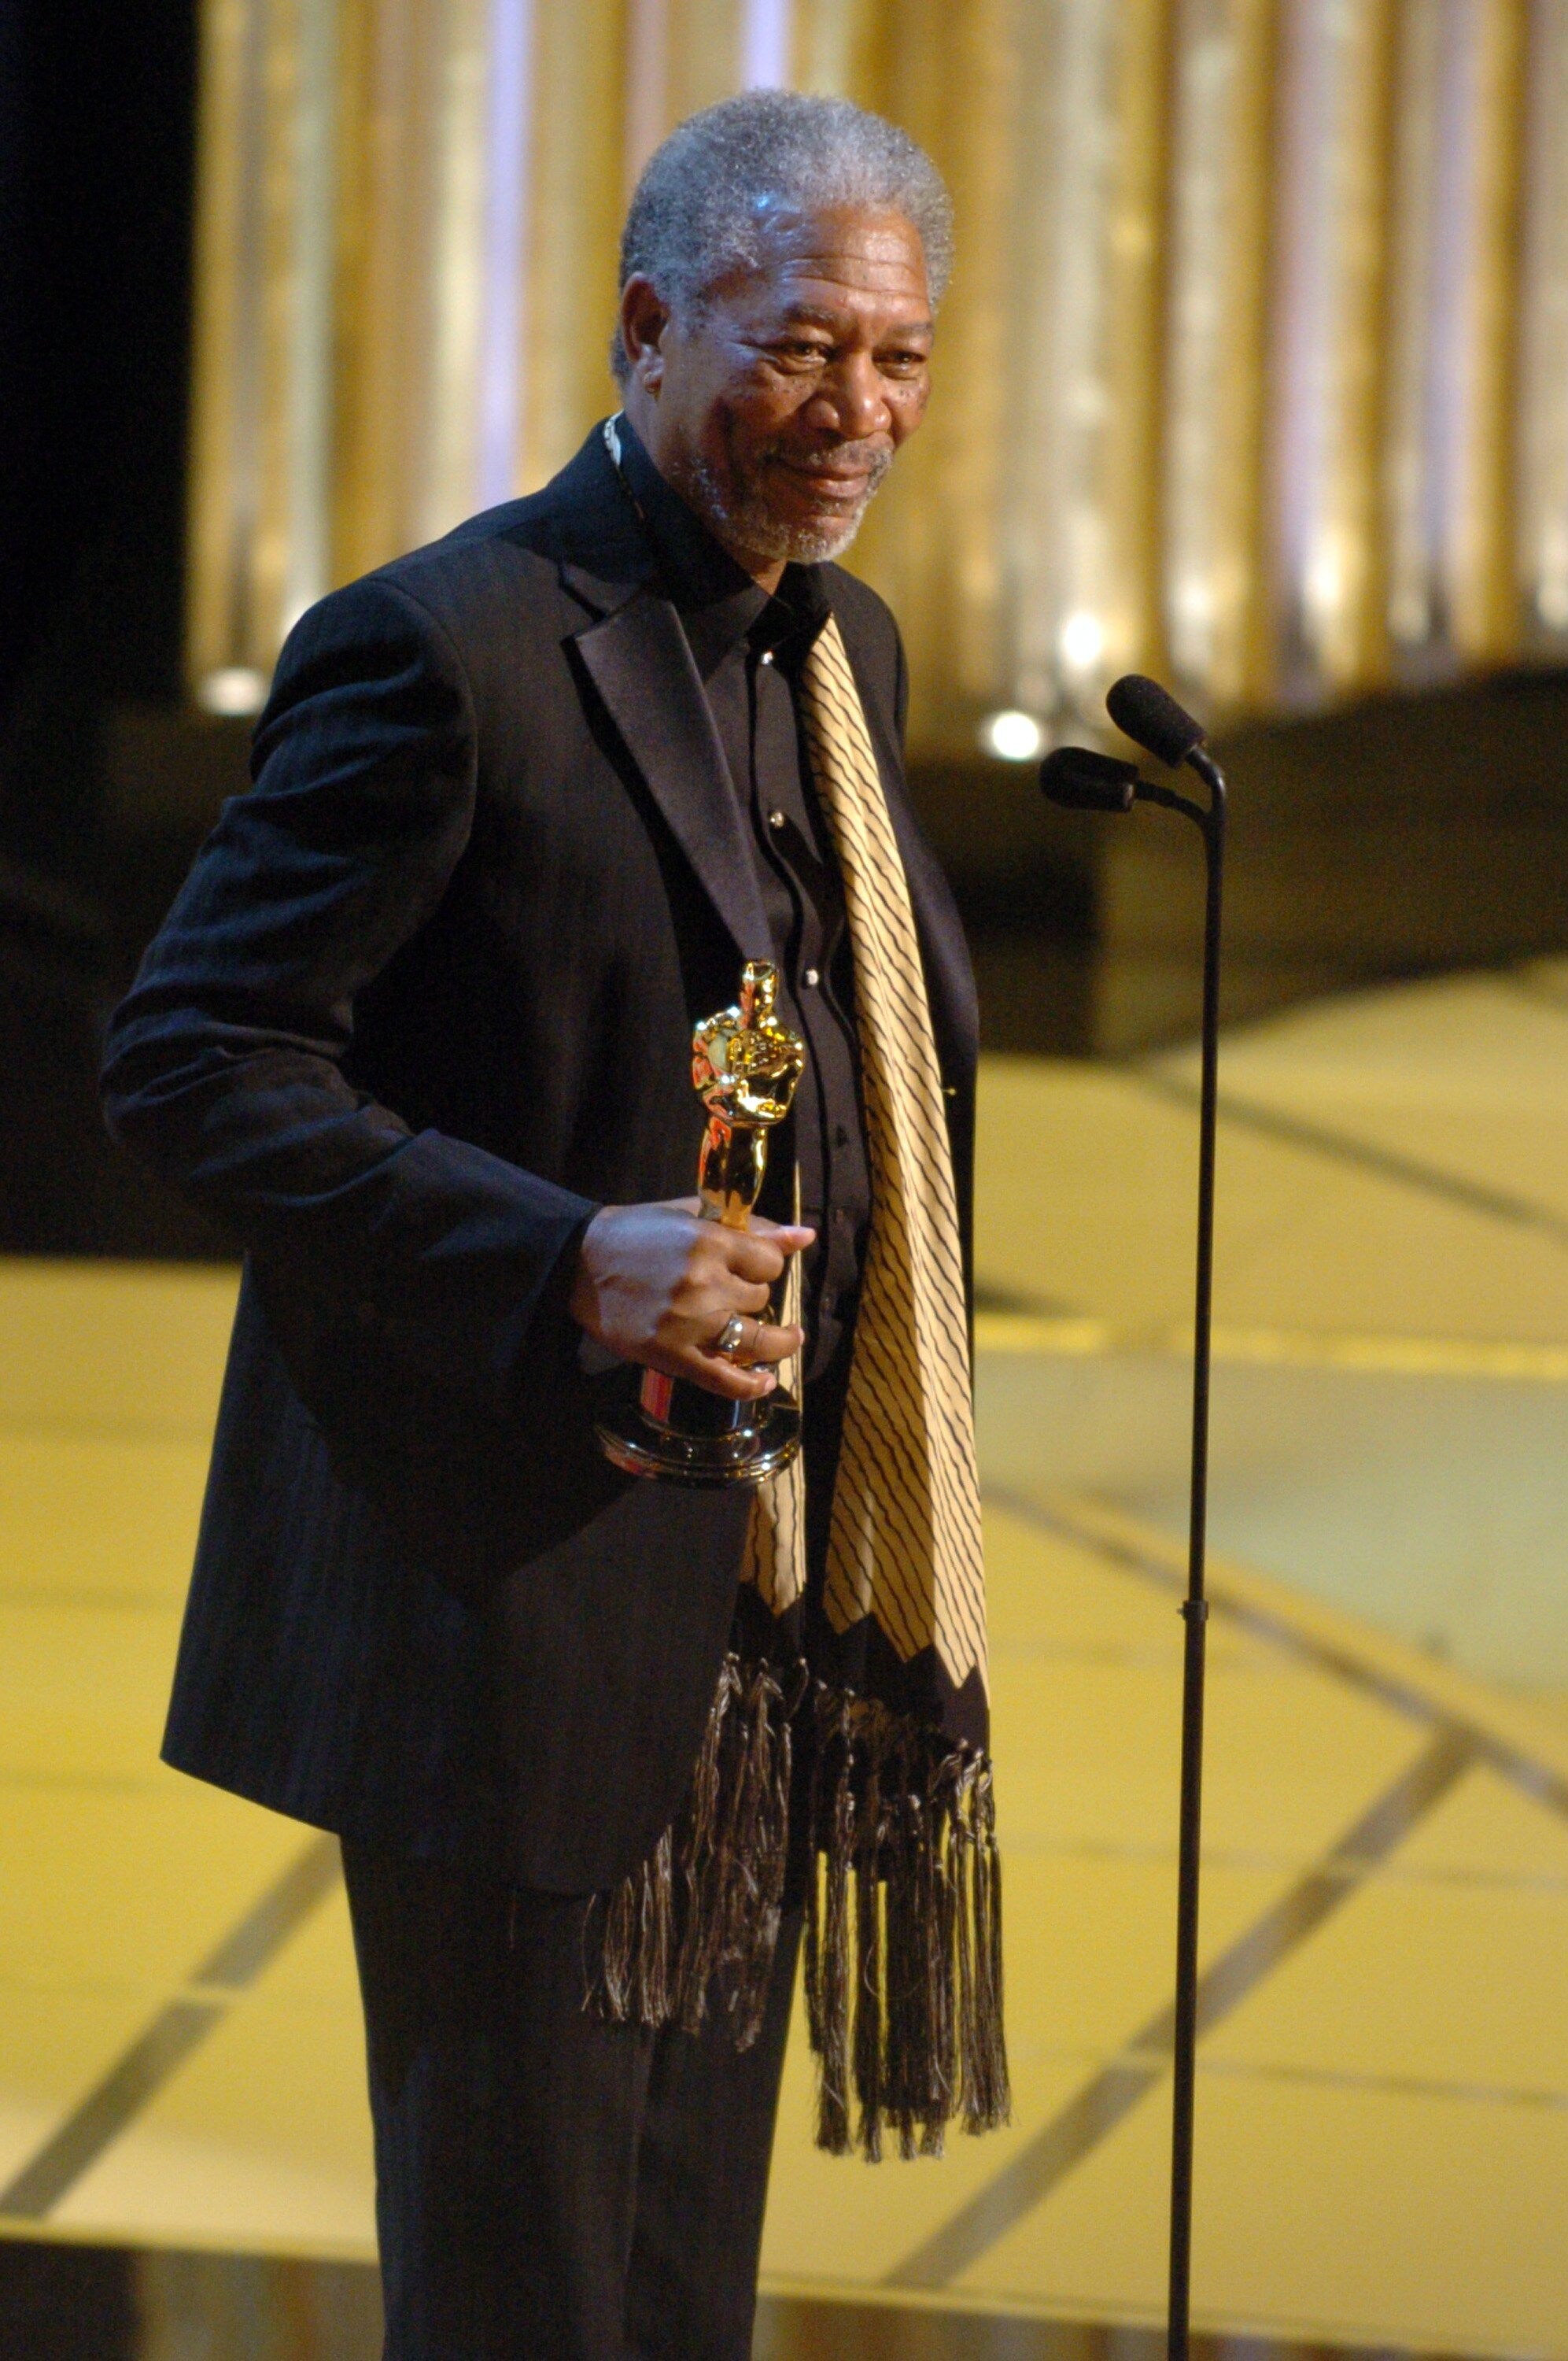 Morgan Freeman accepts the Academy Award for Best Supporting Actor.